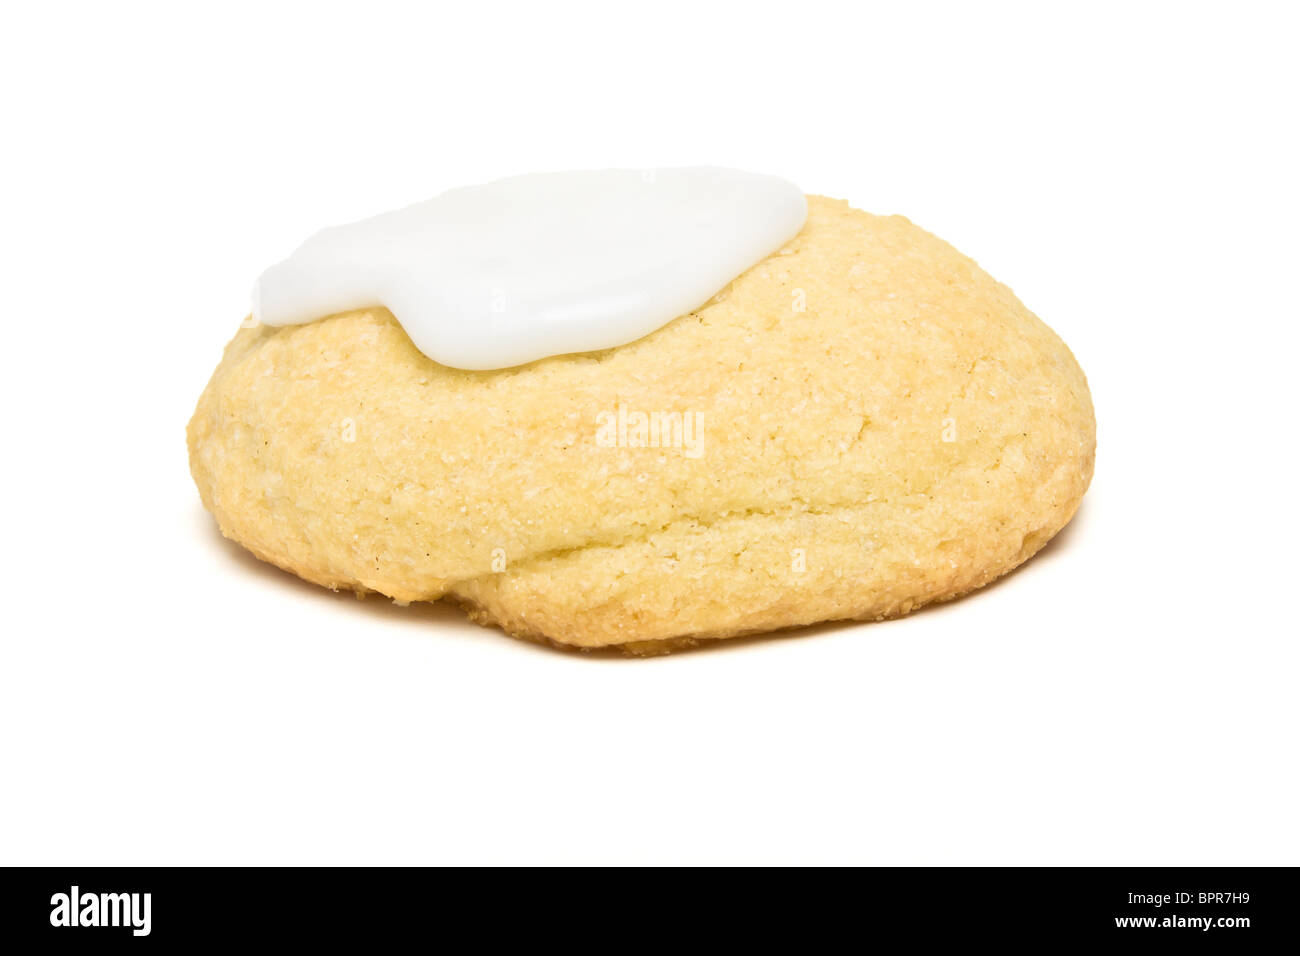 Home Baked Biscuit with white icing isolated on white. - Stock Image